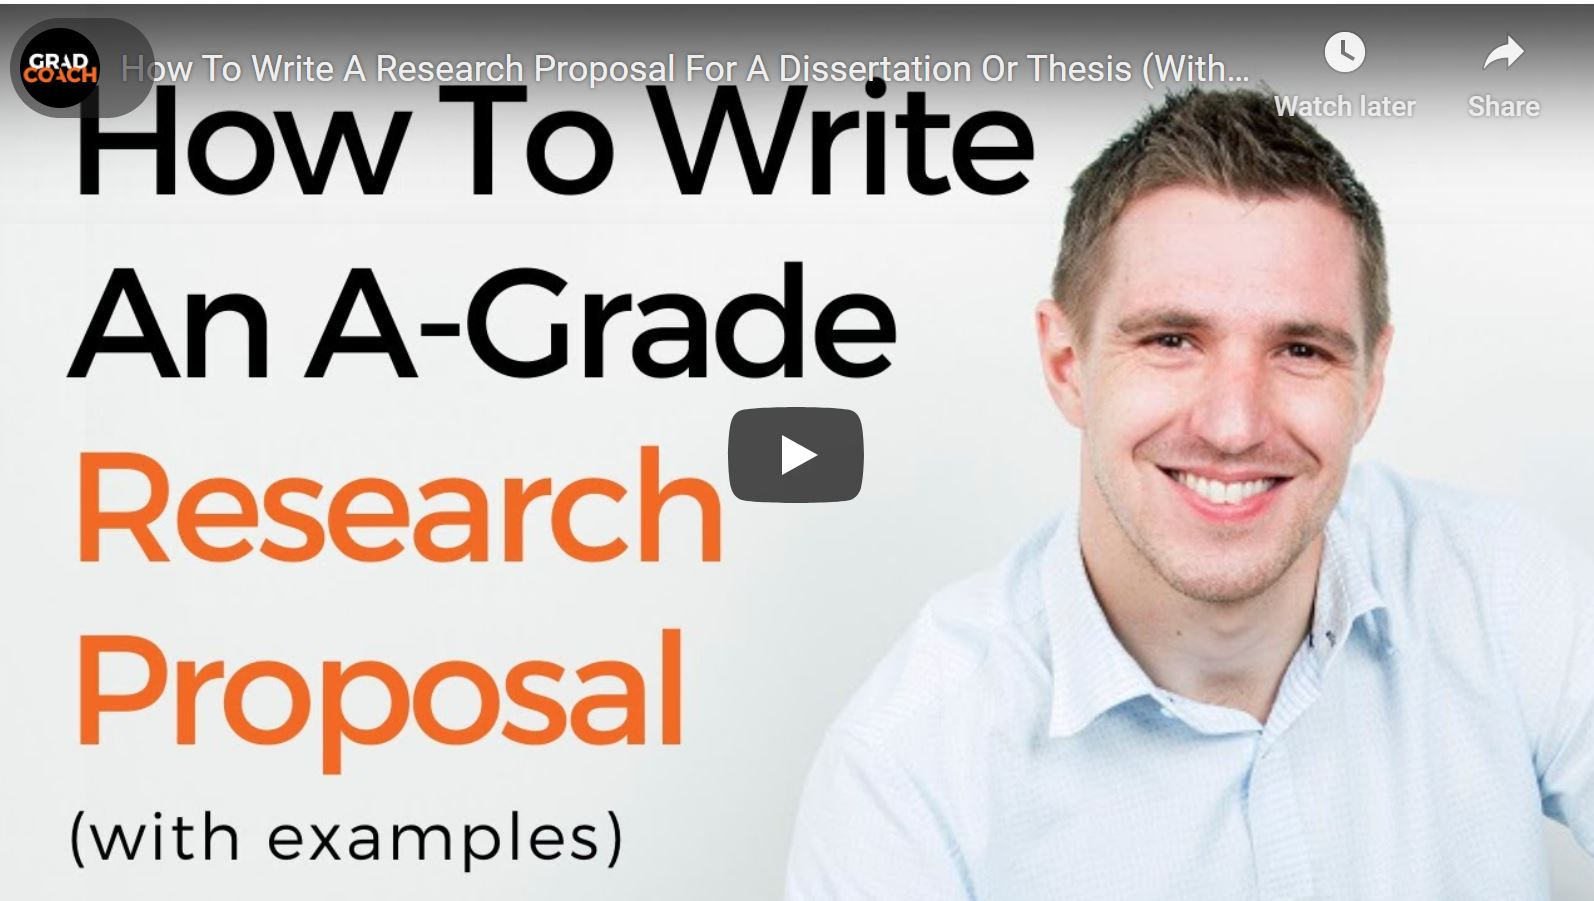 How To Write A Winning Dissertation (Or Thesis) Research Proposal: 5 Straightforward Steps